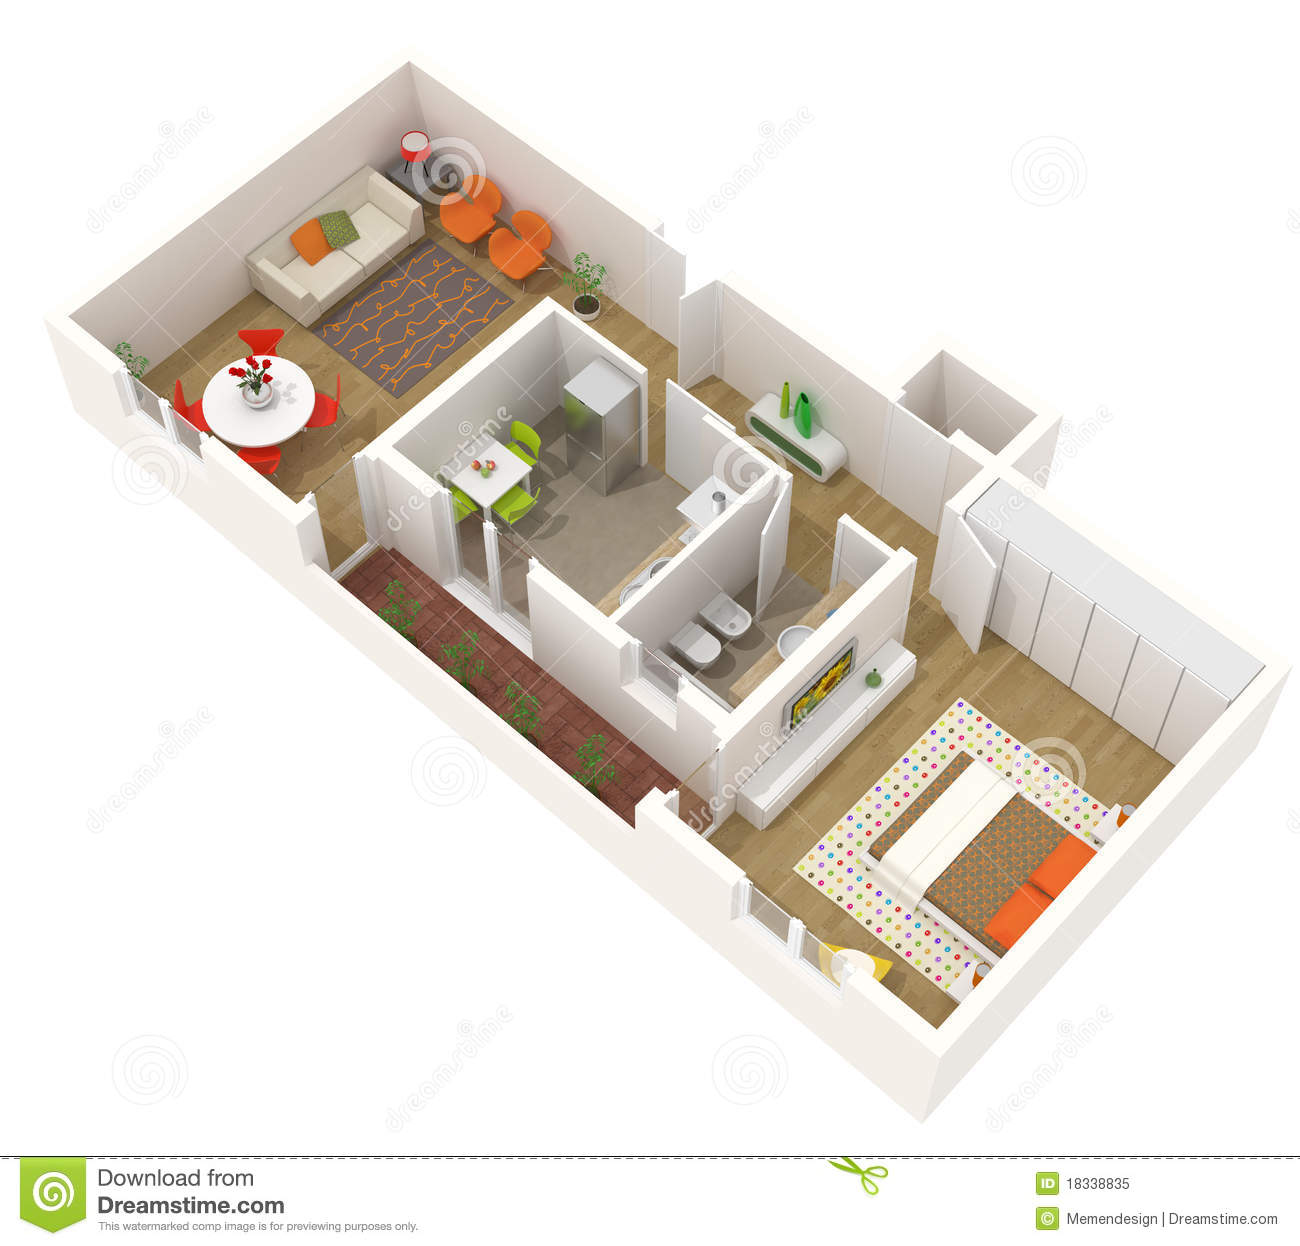 Apartment design 3d floor plan stock illustration for Small apartment design floor plan